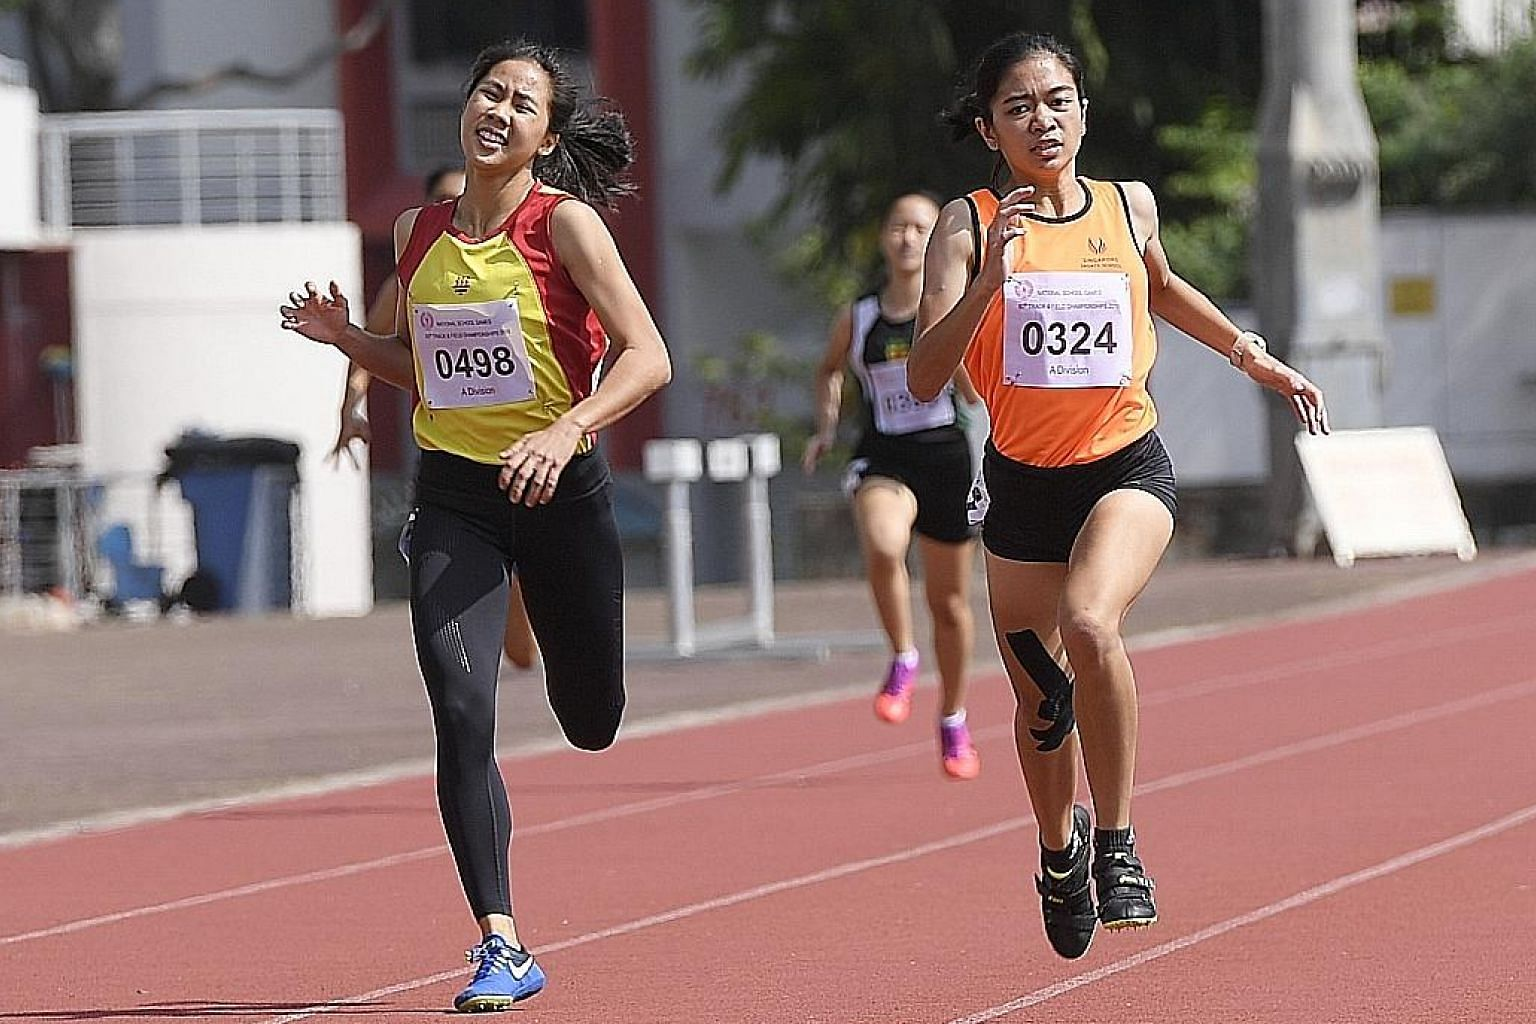 Diane Pragasam from the Singapore Sports School sprinting to the finish line to hold off Hwa Chong Institution's Amanda Woo to win the A Division 400m in a personal-best 61.00 seconds at Choa Chu Kang Stadium yesterday.